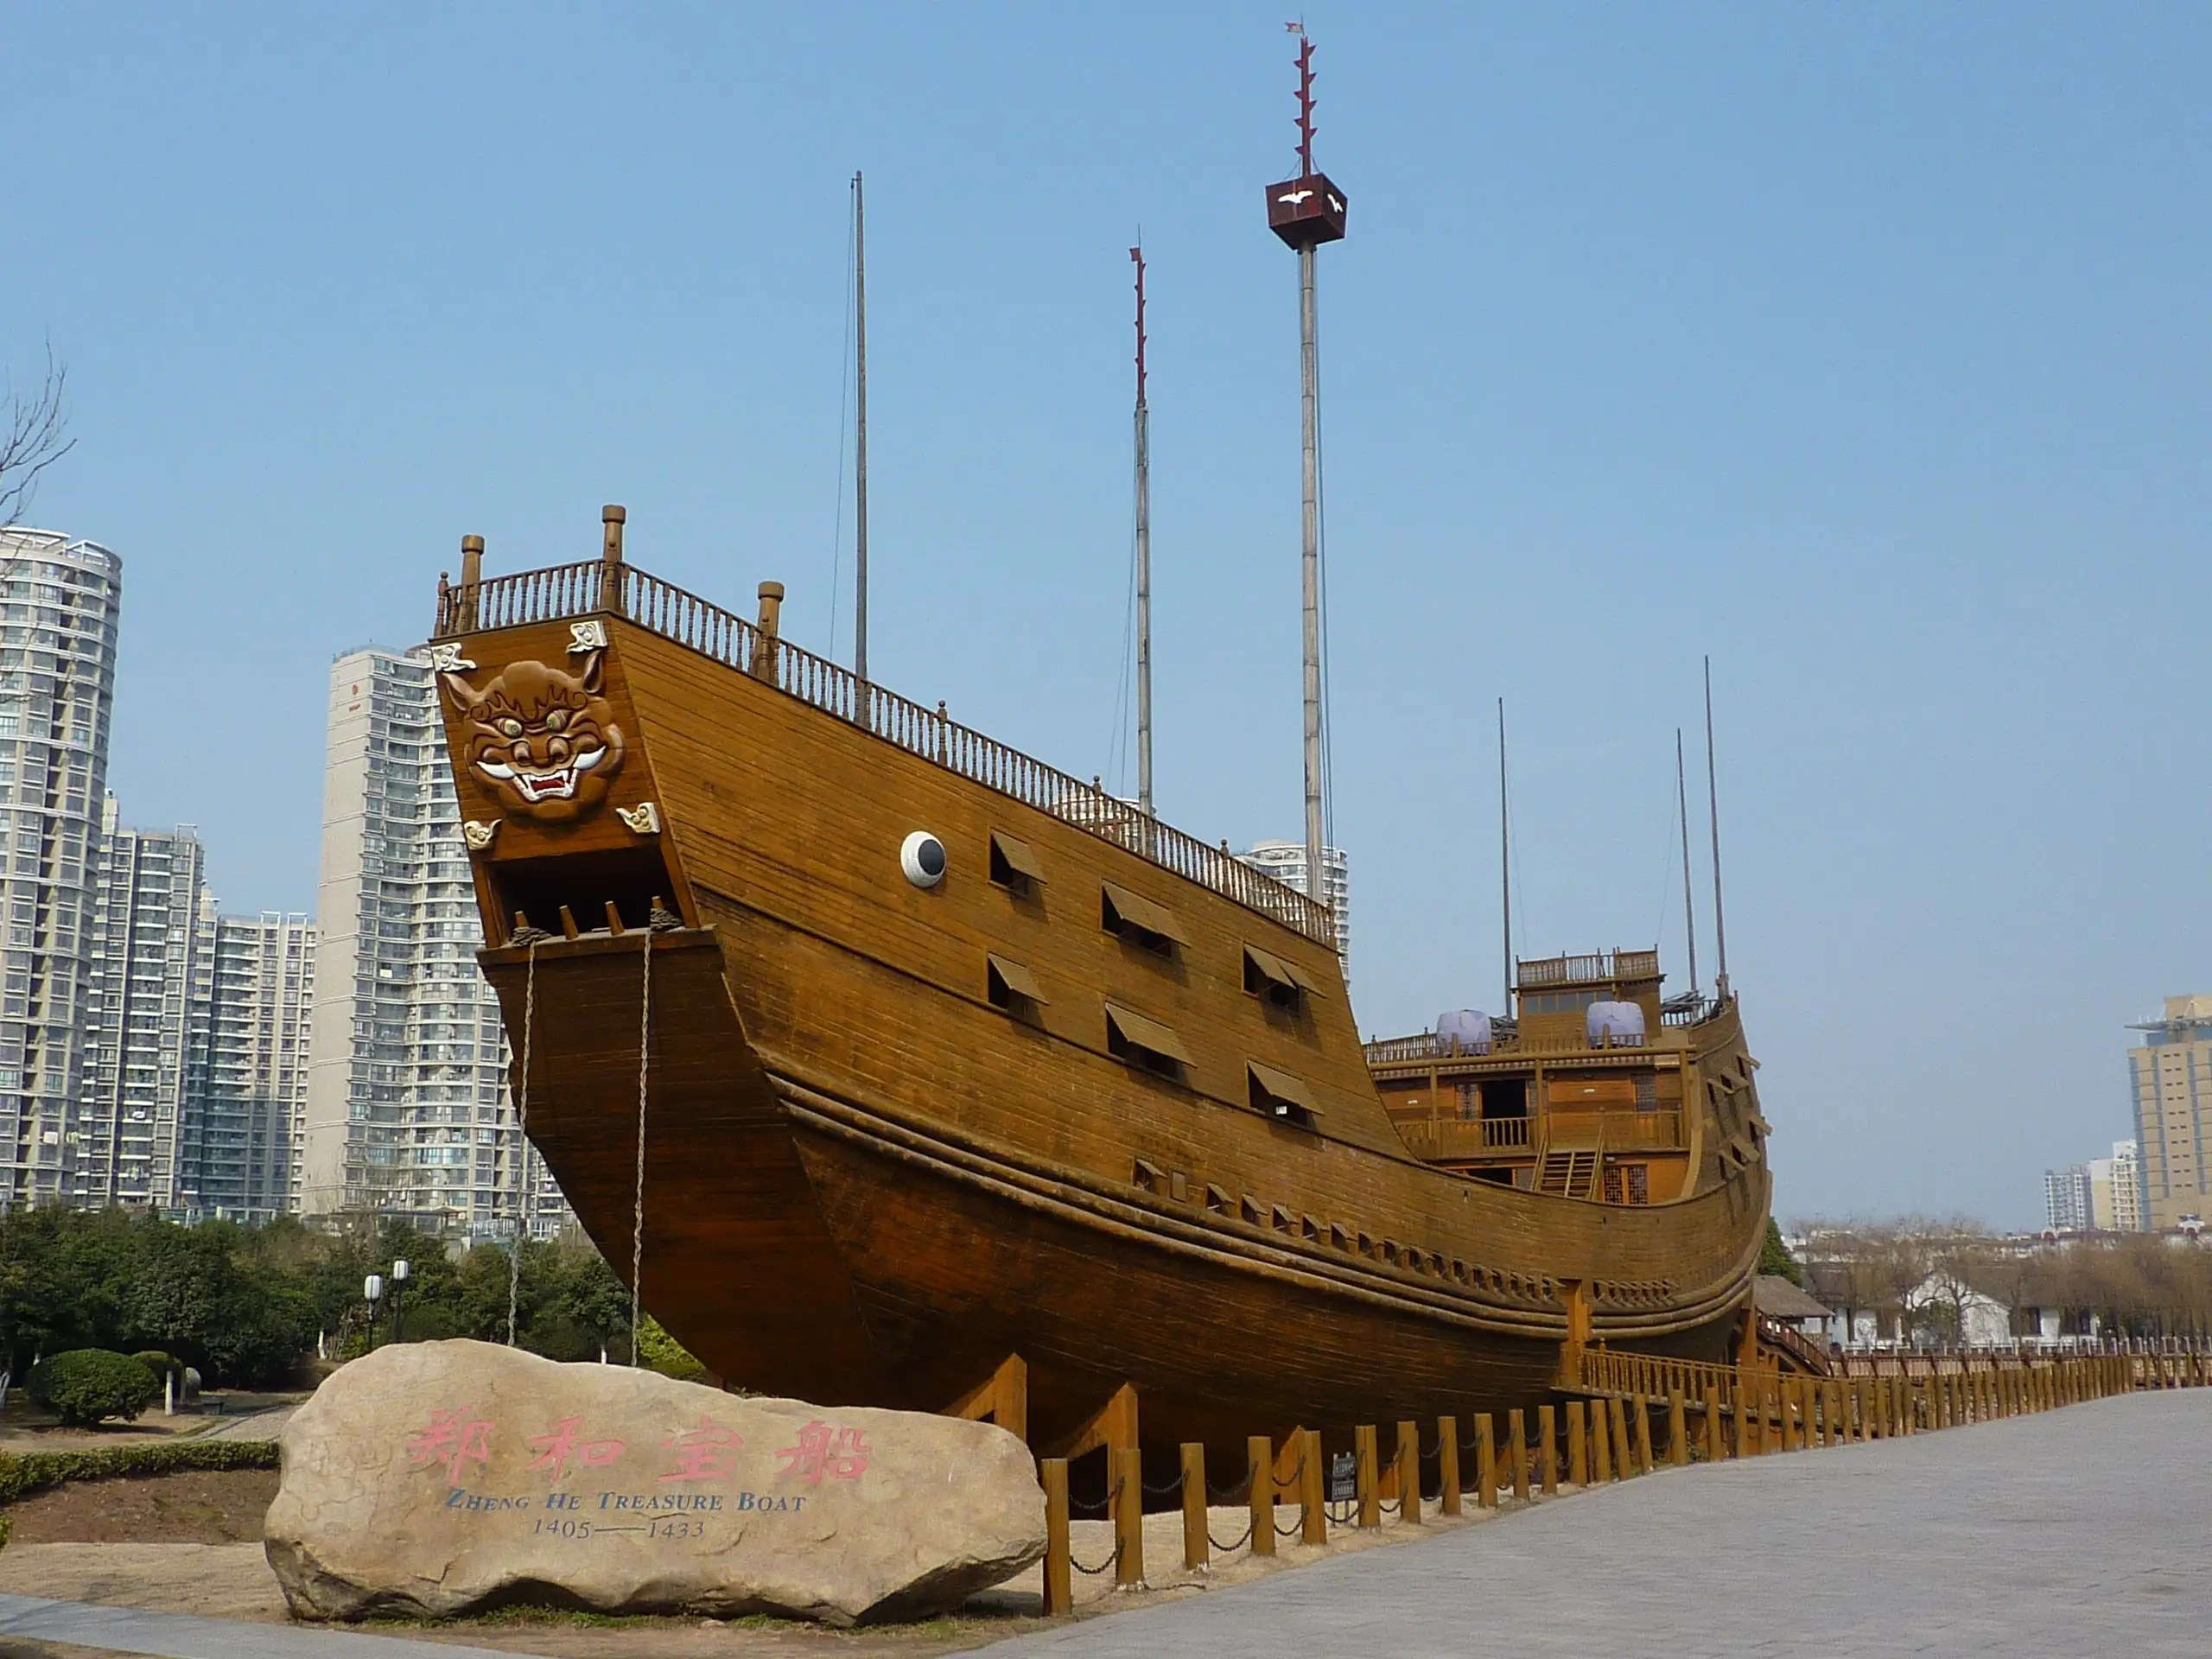 Nanjing Treasure Boat